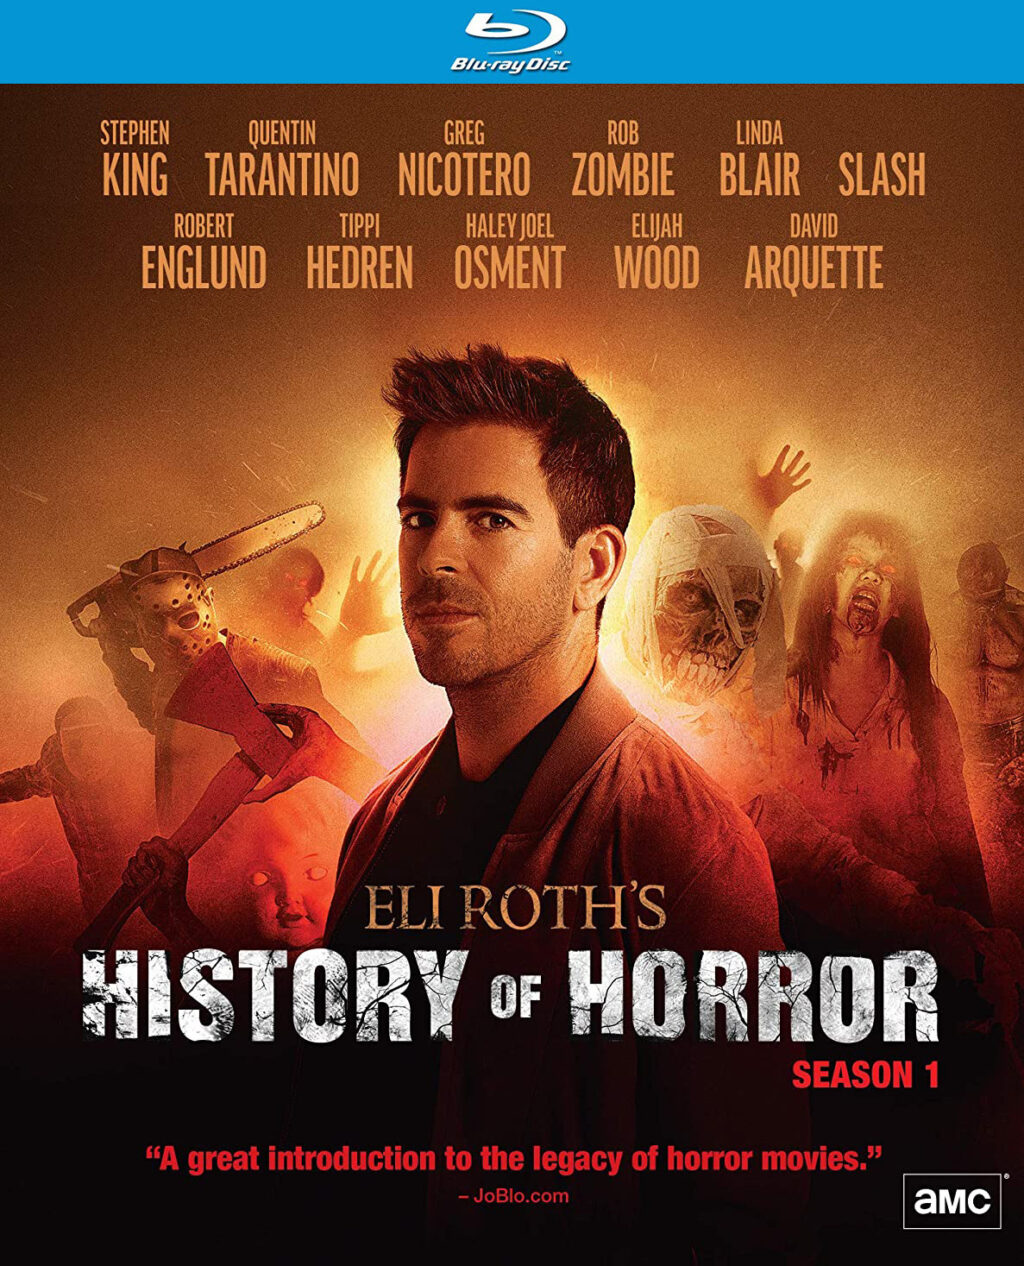 Eli Roth's History of Horror Blu ray 1024x1266 - Eli Roth's HISTORY OF HORROR: Season 1 Hits Blu-ray This Halloween